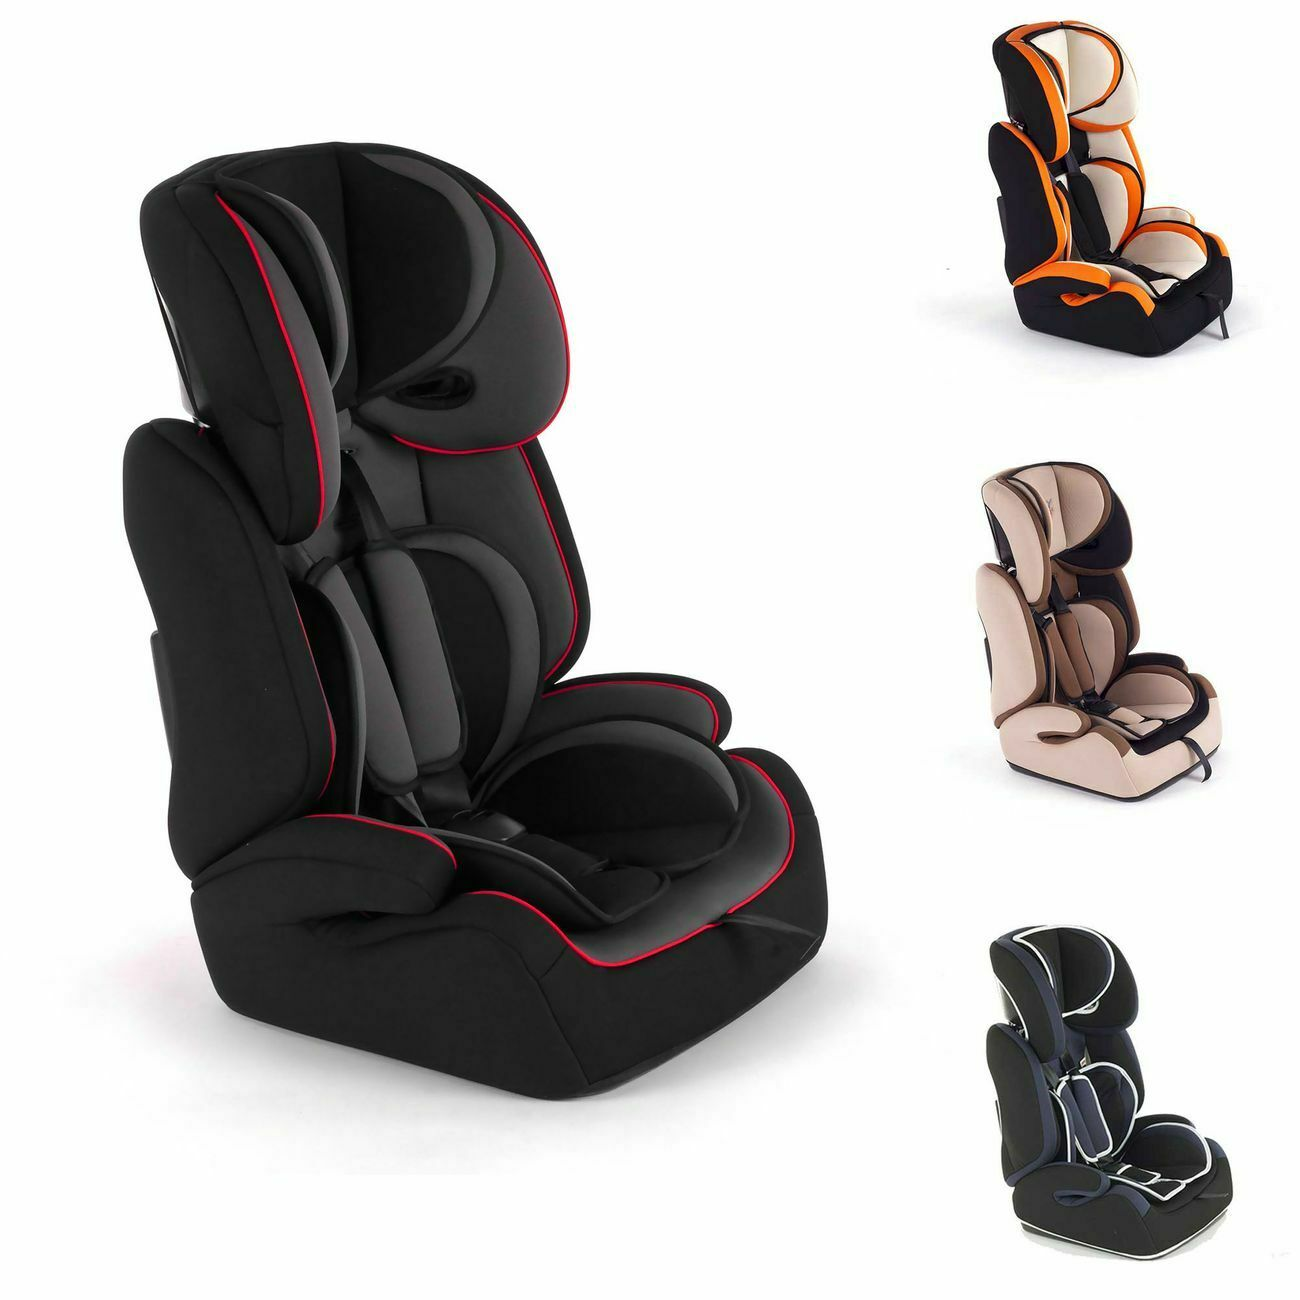 autokindersitz kinderautositz autositz kindersitz 9 36 kg f r gruppe 1 2 3 neu eur 39 99. Black Bedroom Furniture Sets. Home Design Ideas